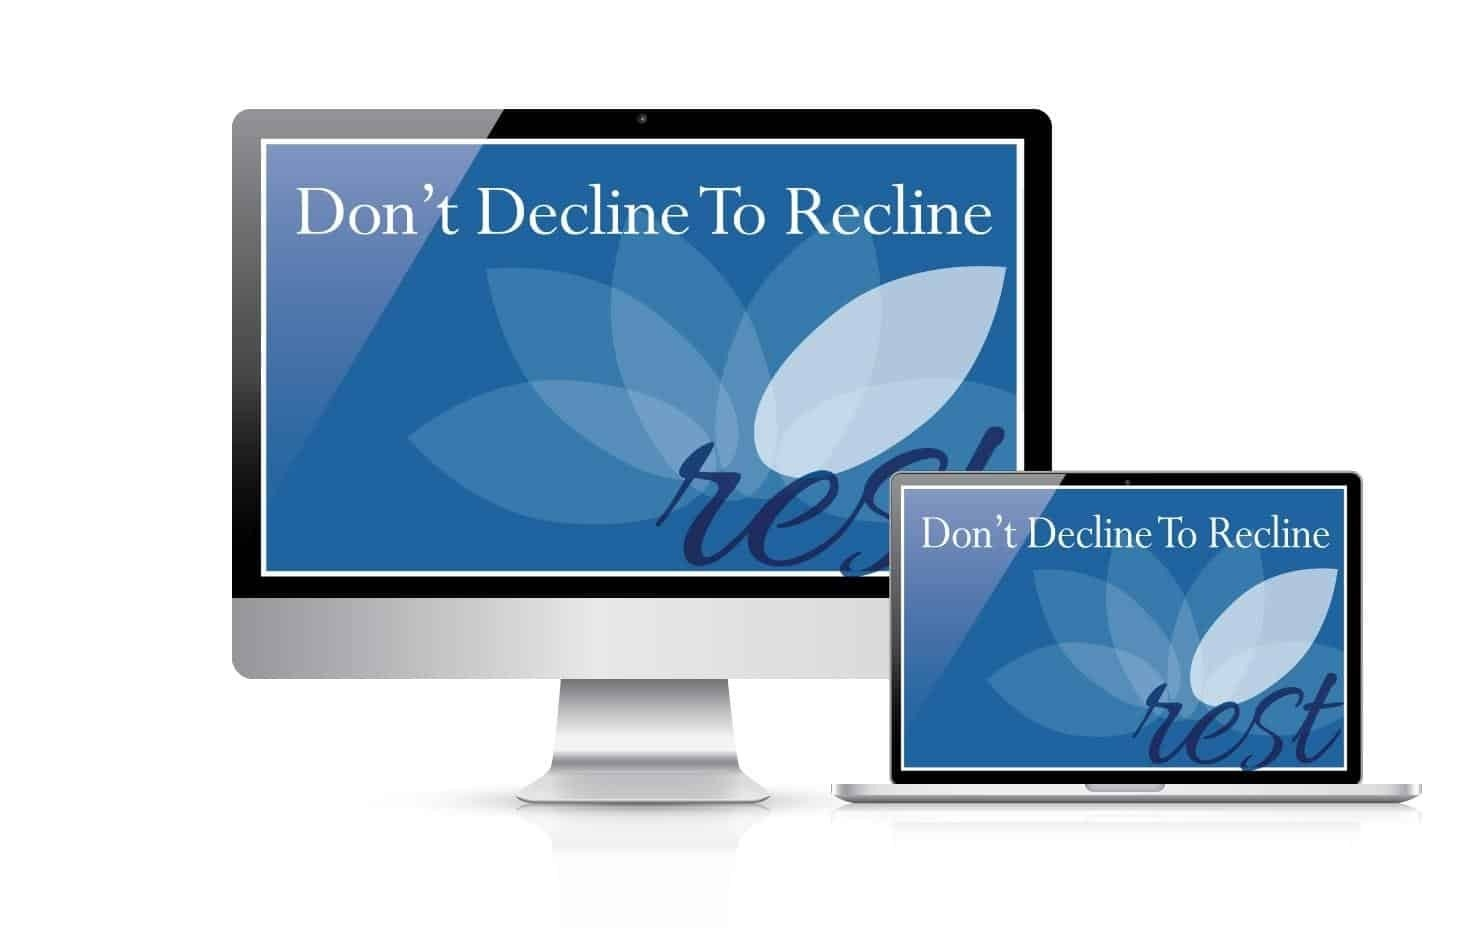 Balance of B'ing Don't Decline to Recline